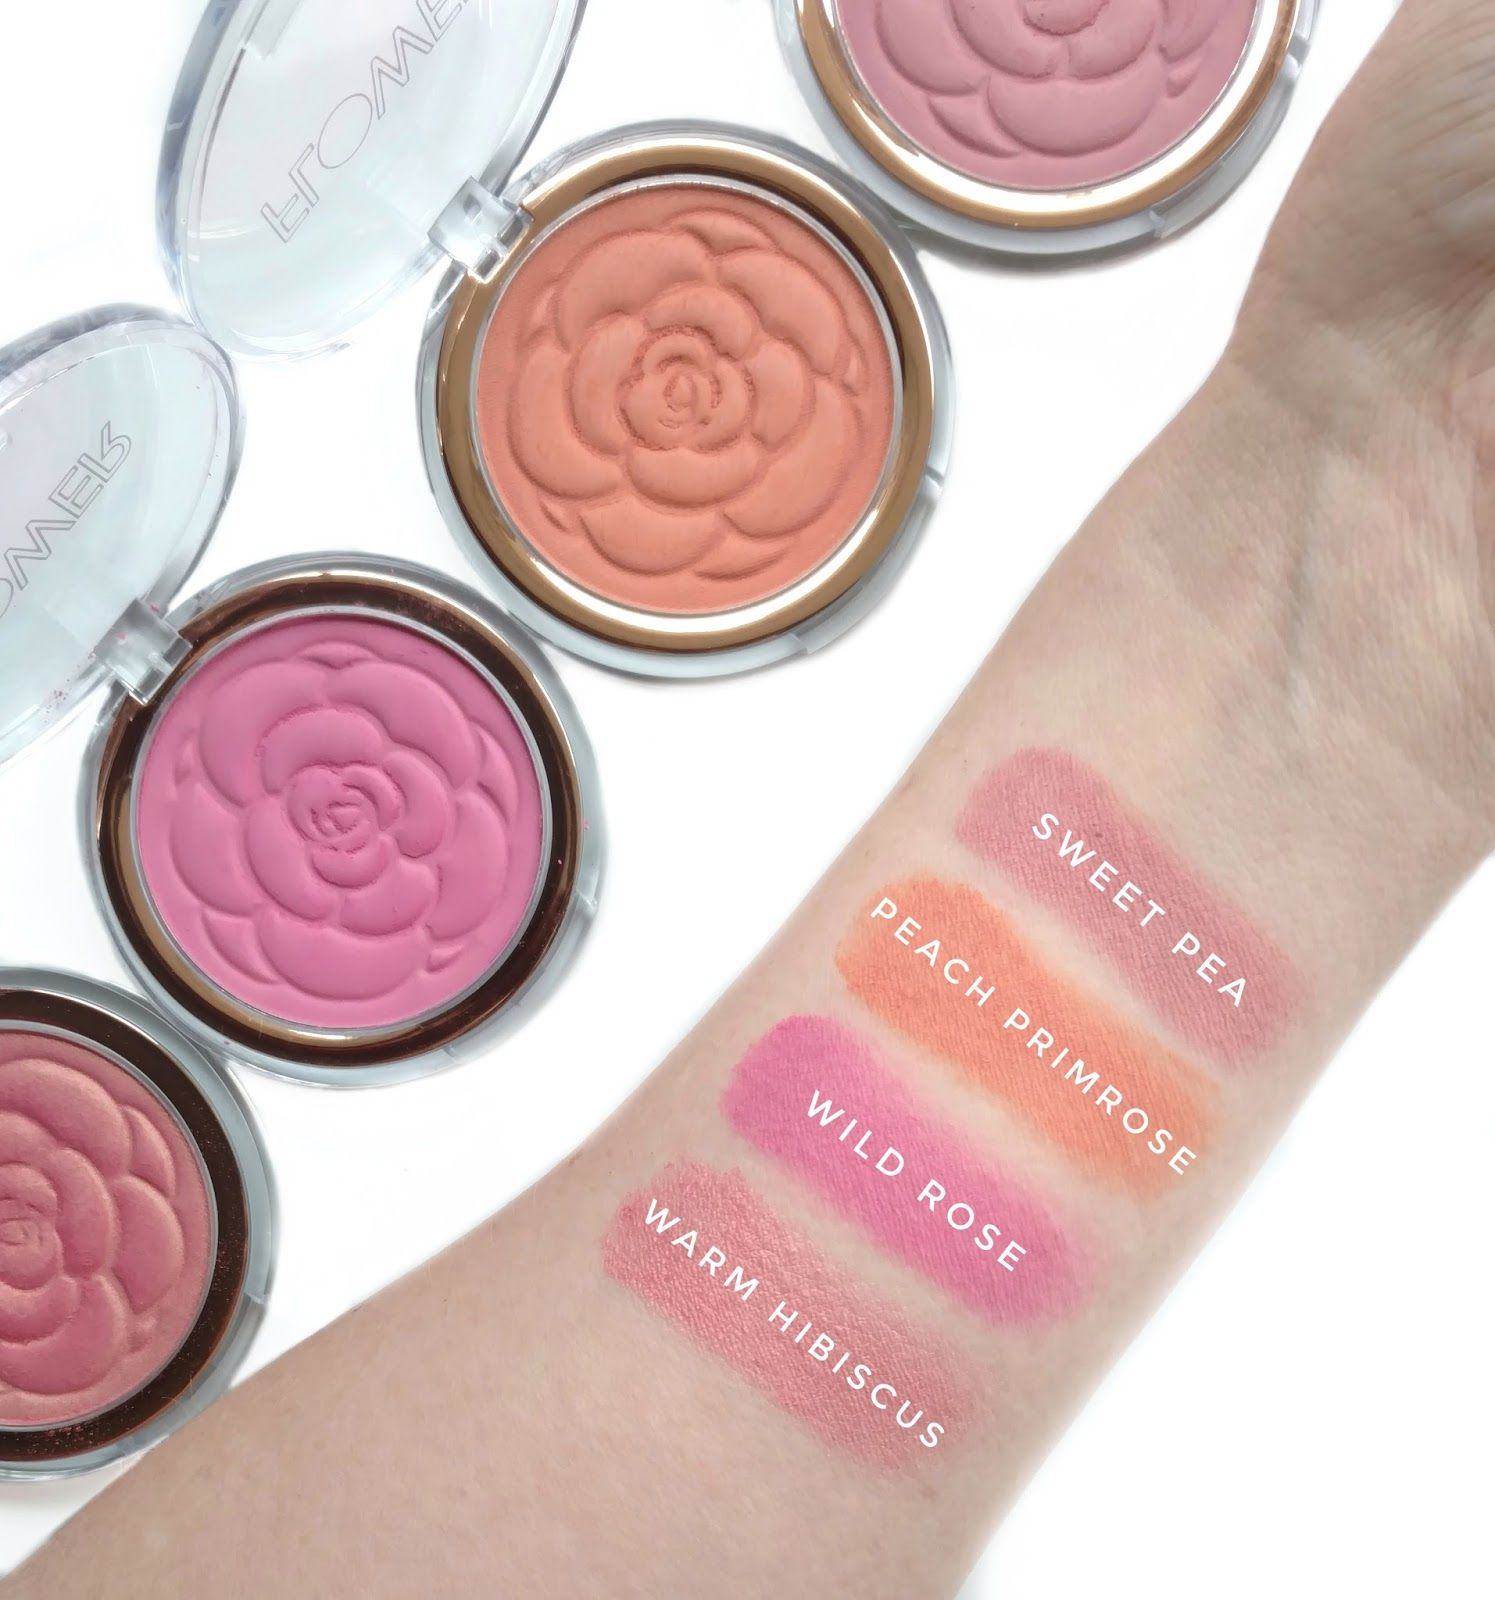 Flower Beauty Flower Pots Blush Review Swatches Cosmetics